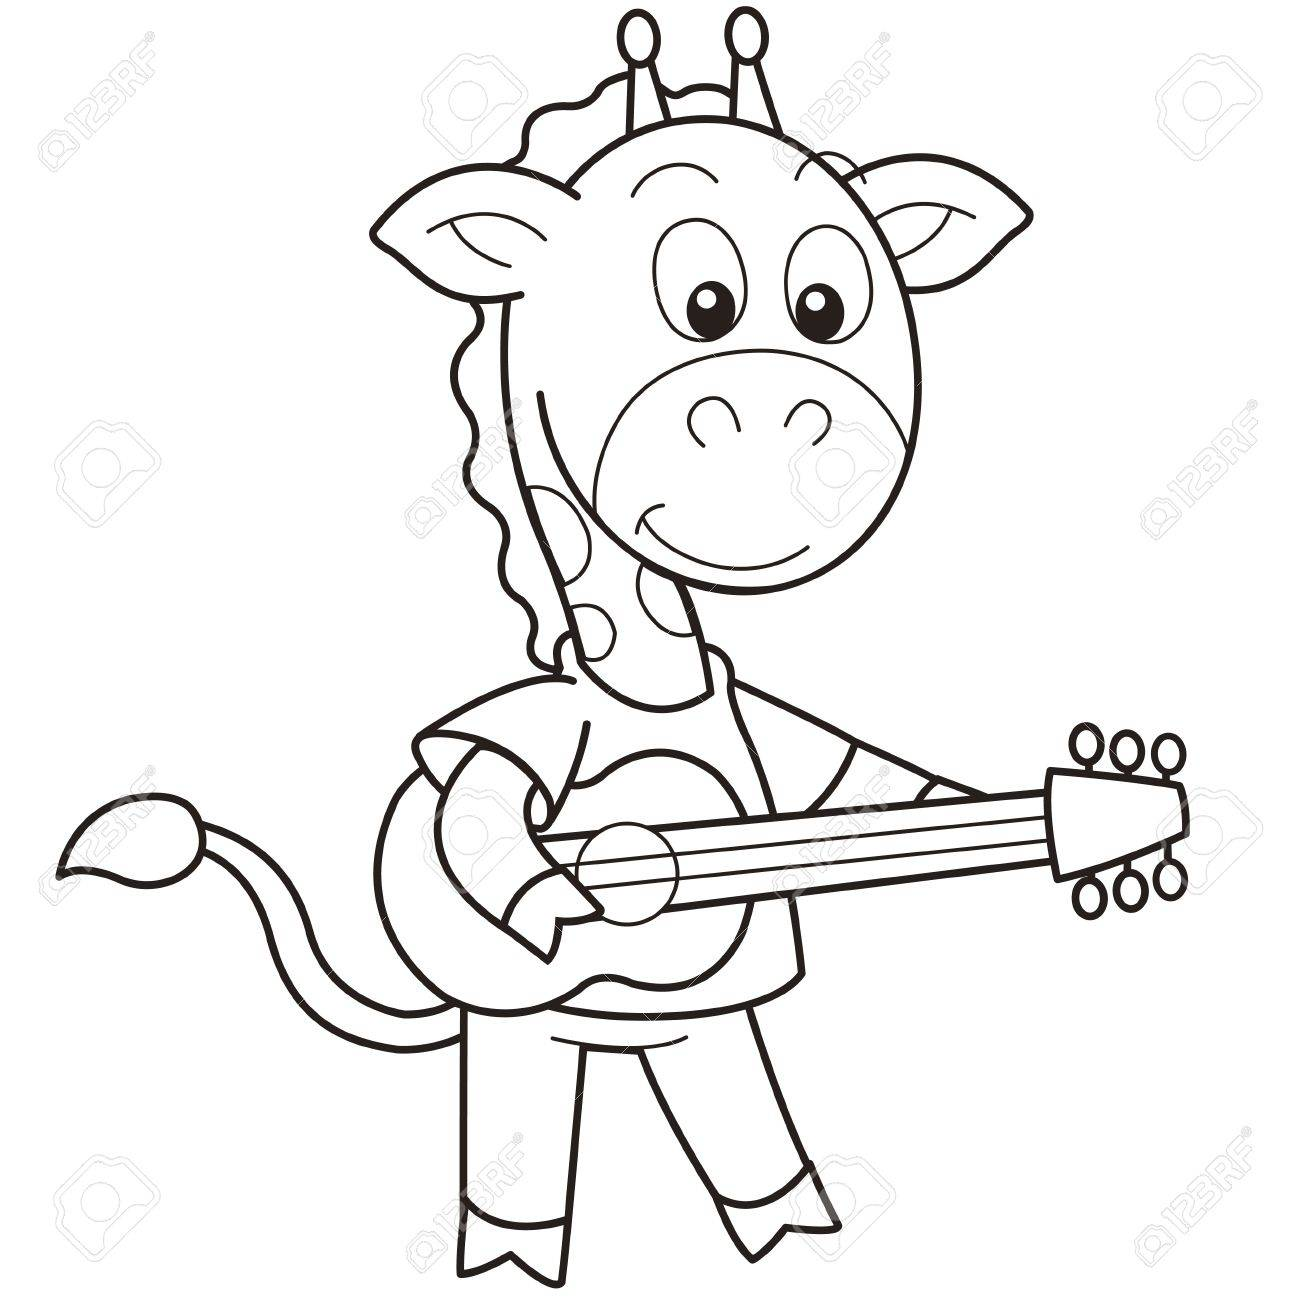 Cartoon Giraffe Playing A Guitar Black And White Royalty Free Cliparts Vectors And Stock Illustration Image 18526629